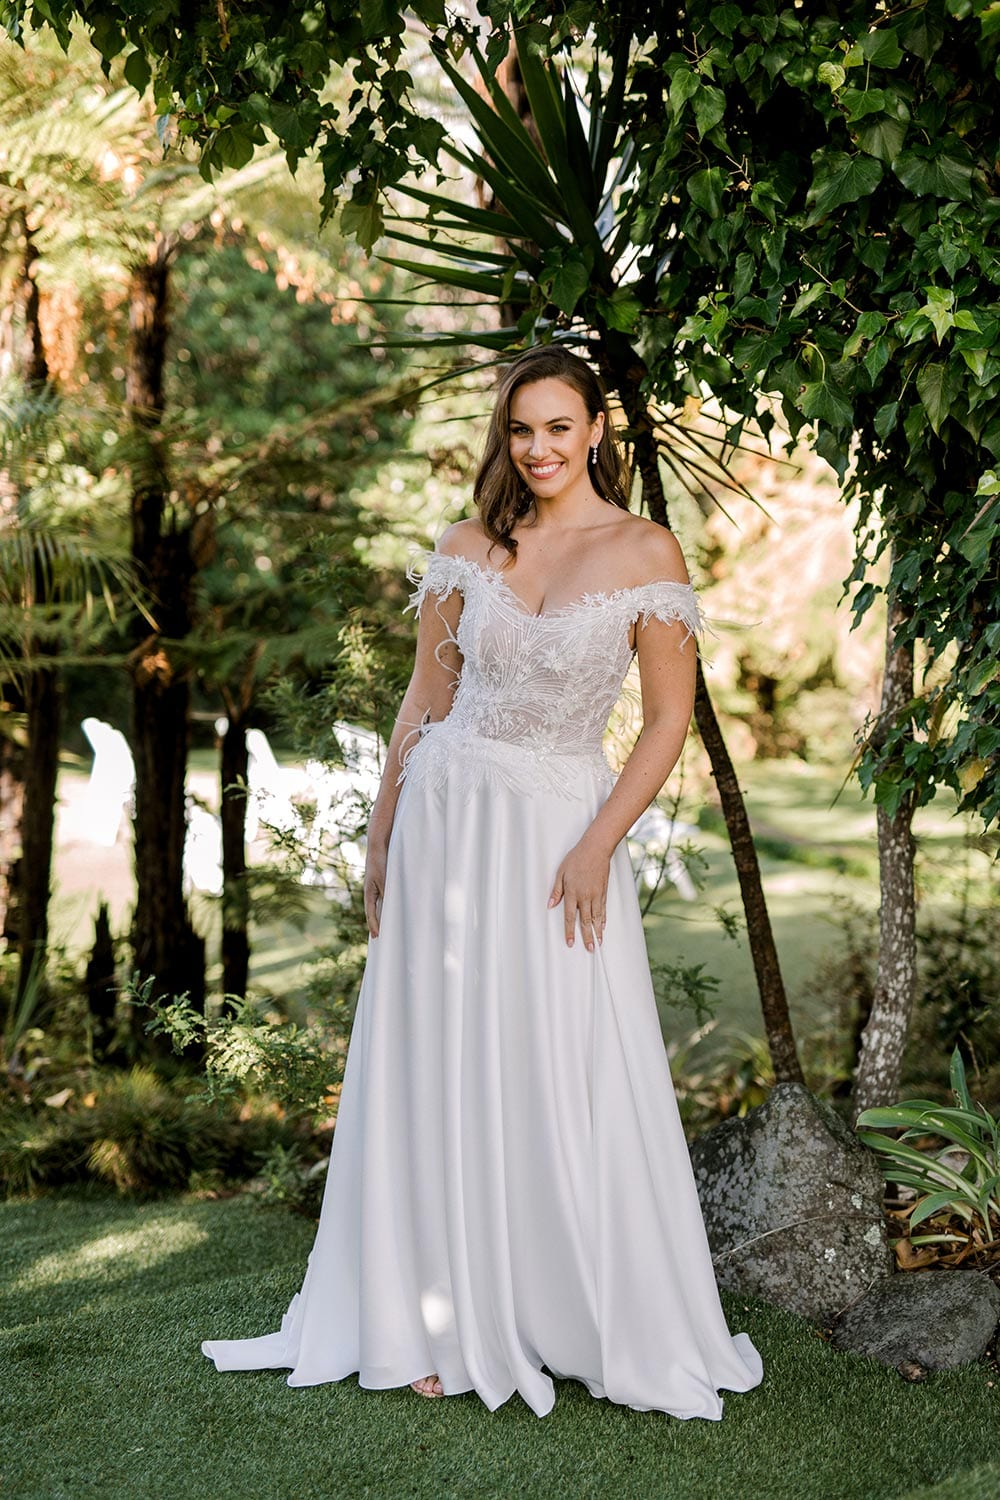 Genevive Wedding Dress from Vinka Design. The soft off-the-shoulder sleeves & semi-sheer structured bodice with hand-appliqued lace and a soft satin skirt make this a romantic & dreamy wedding dress. Full length detail of dress, photographed at Tui Hills.